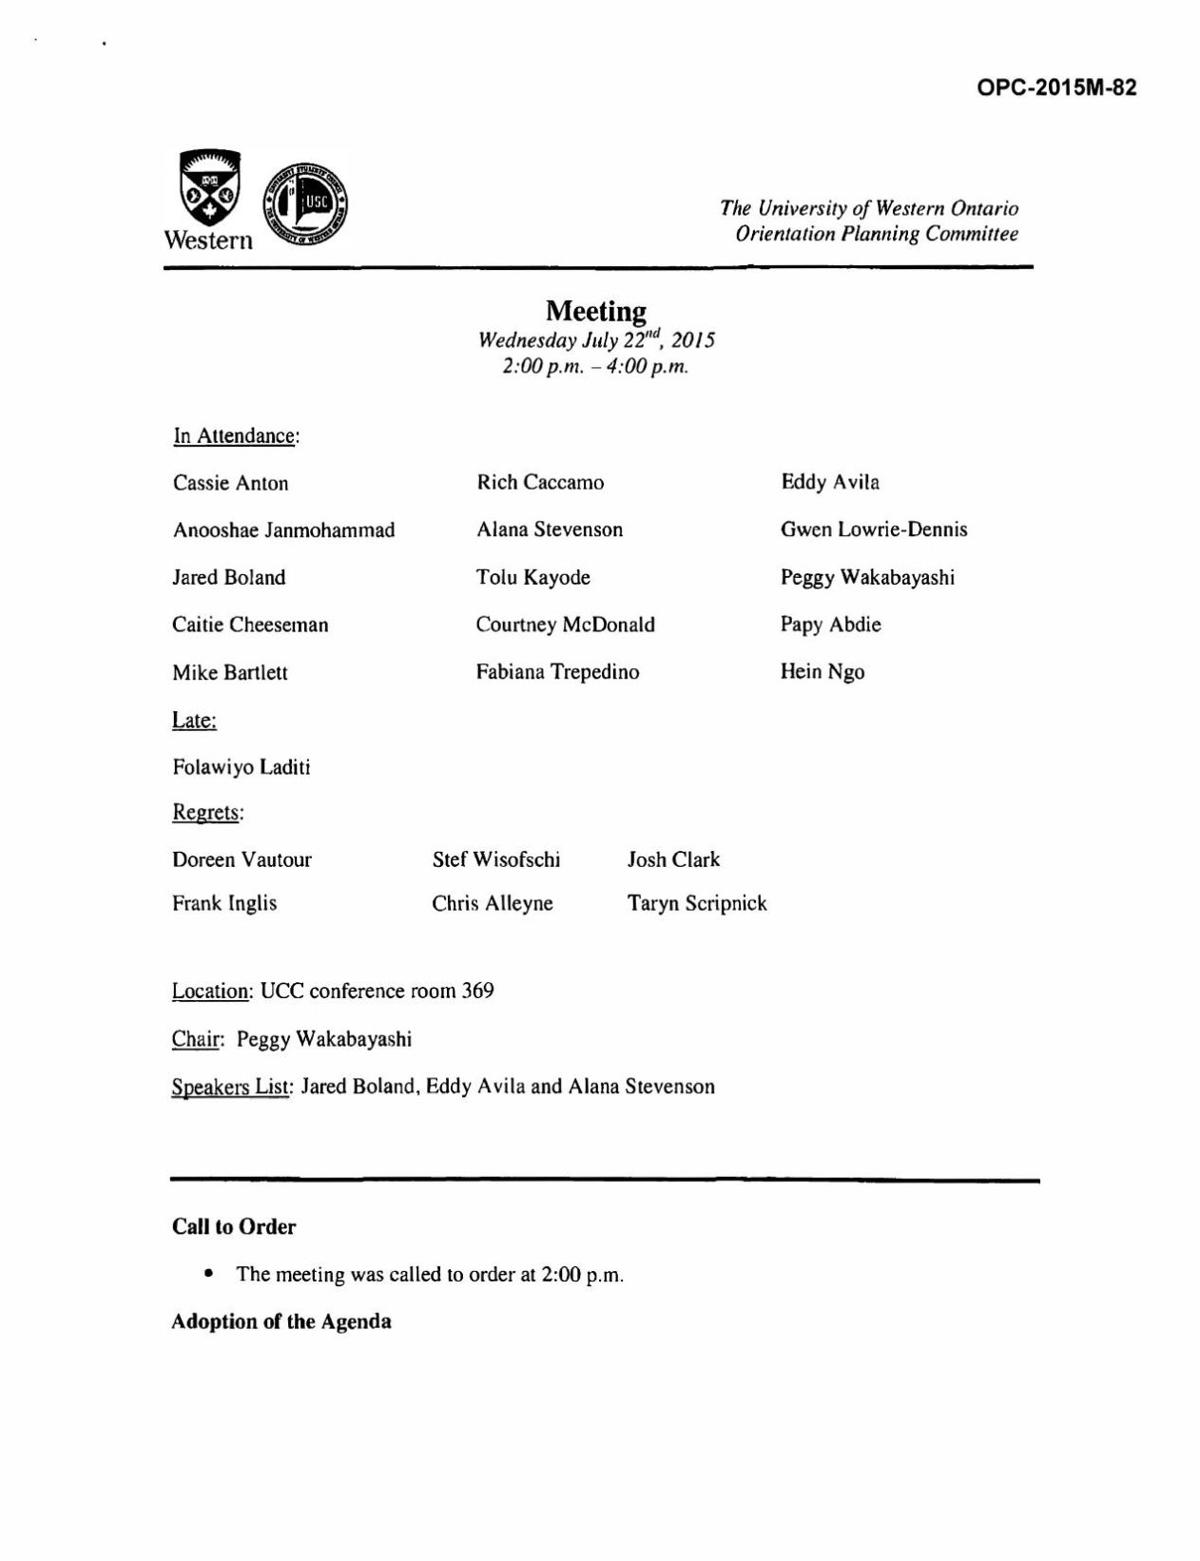 OPC Meeting - July 22, 2015.pdf